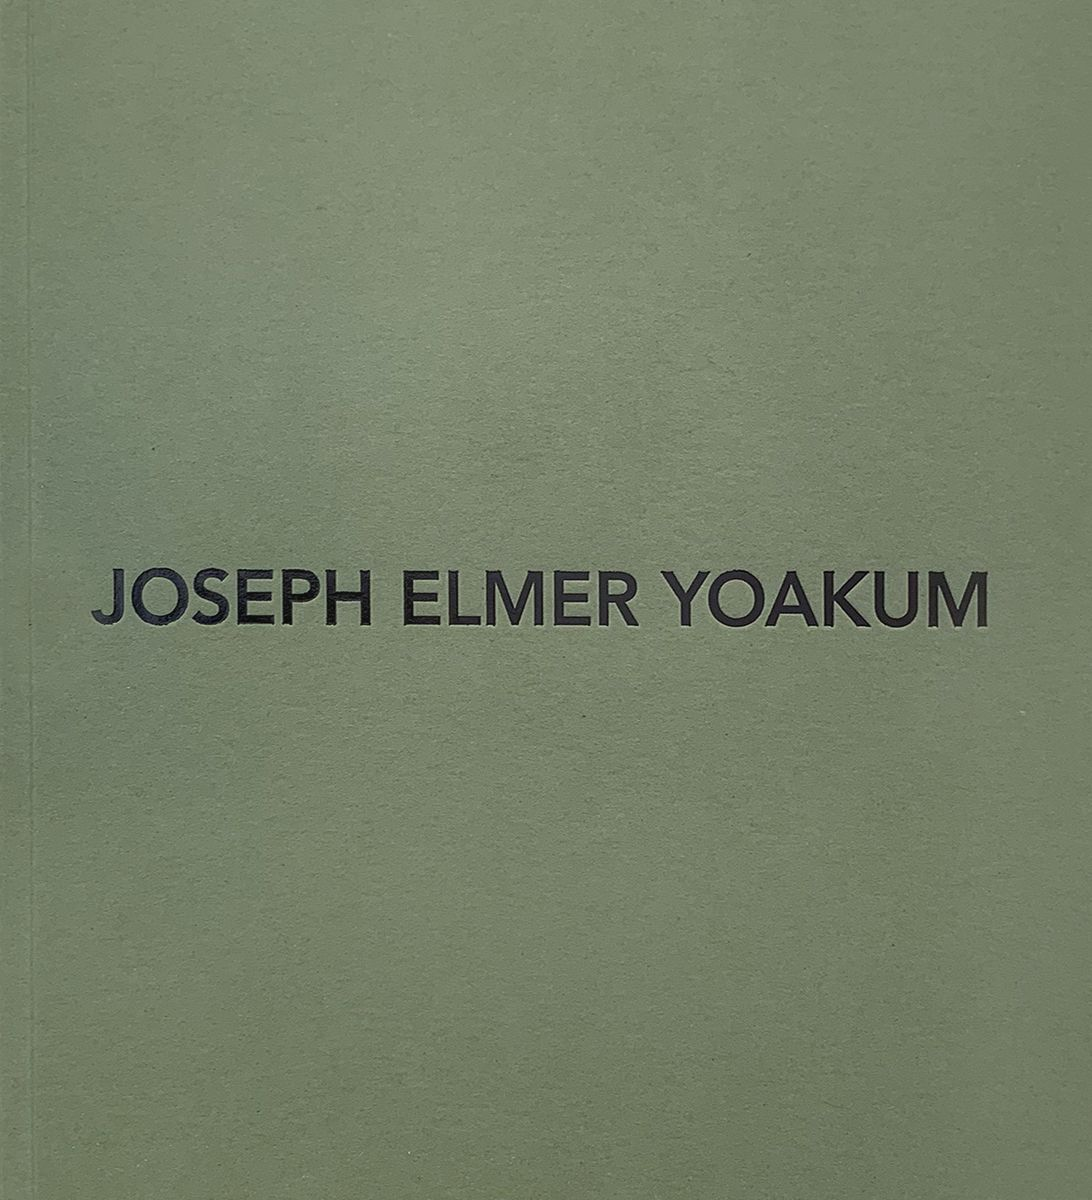 Joseph Elmer Yoakum Book Published by Venus Over Manhattan 2019